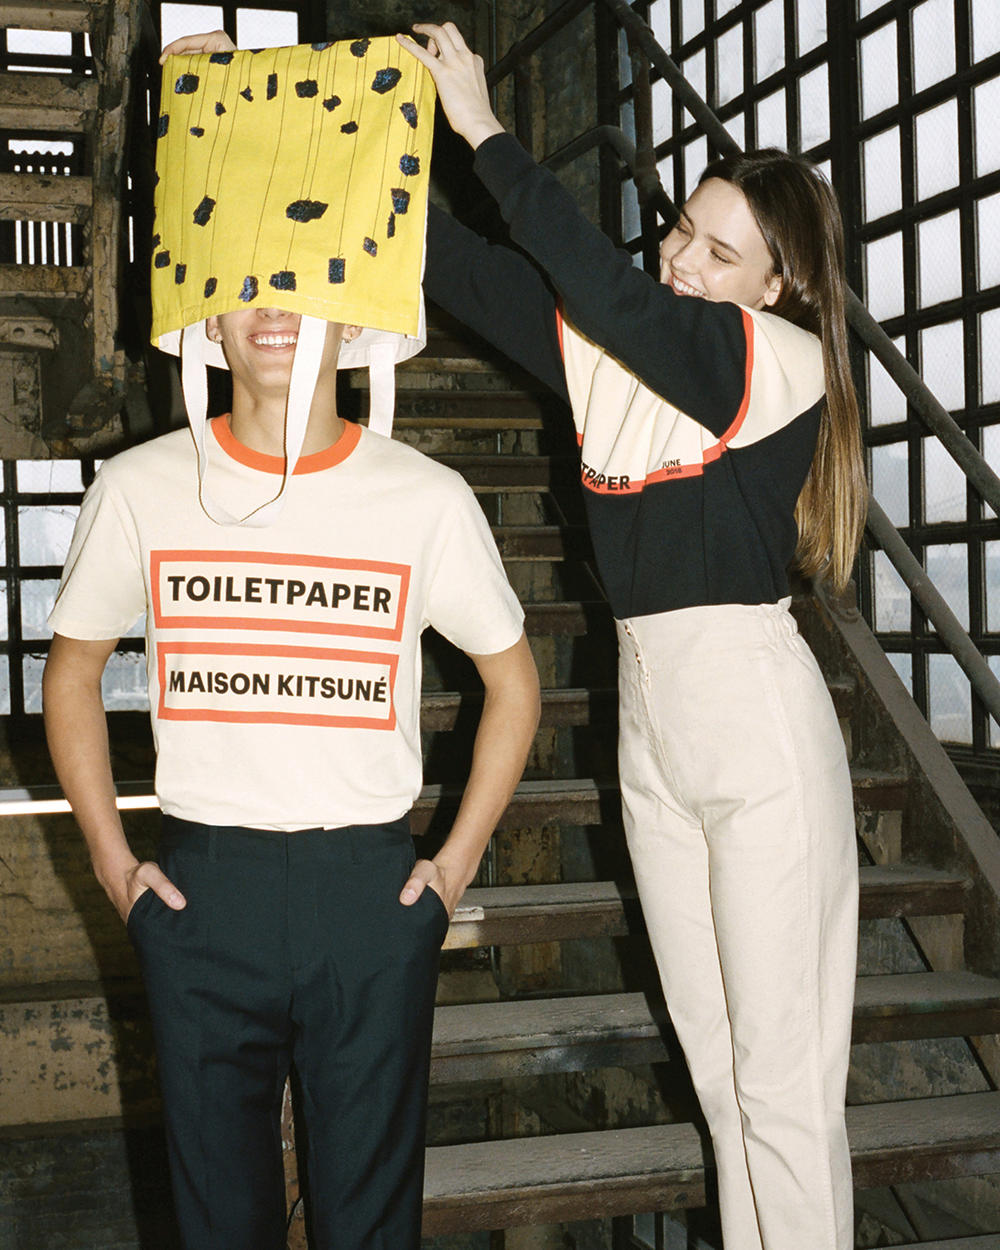 Maison Kitsune Toiletpaper magazine Collaboration june 2018 artwork Pierpaolo Ferrari Maurizio Cattelan new york launch drop debut collection unisex